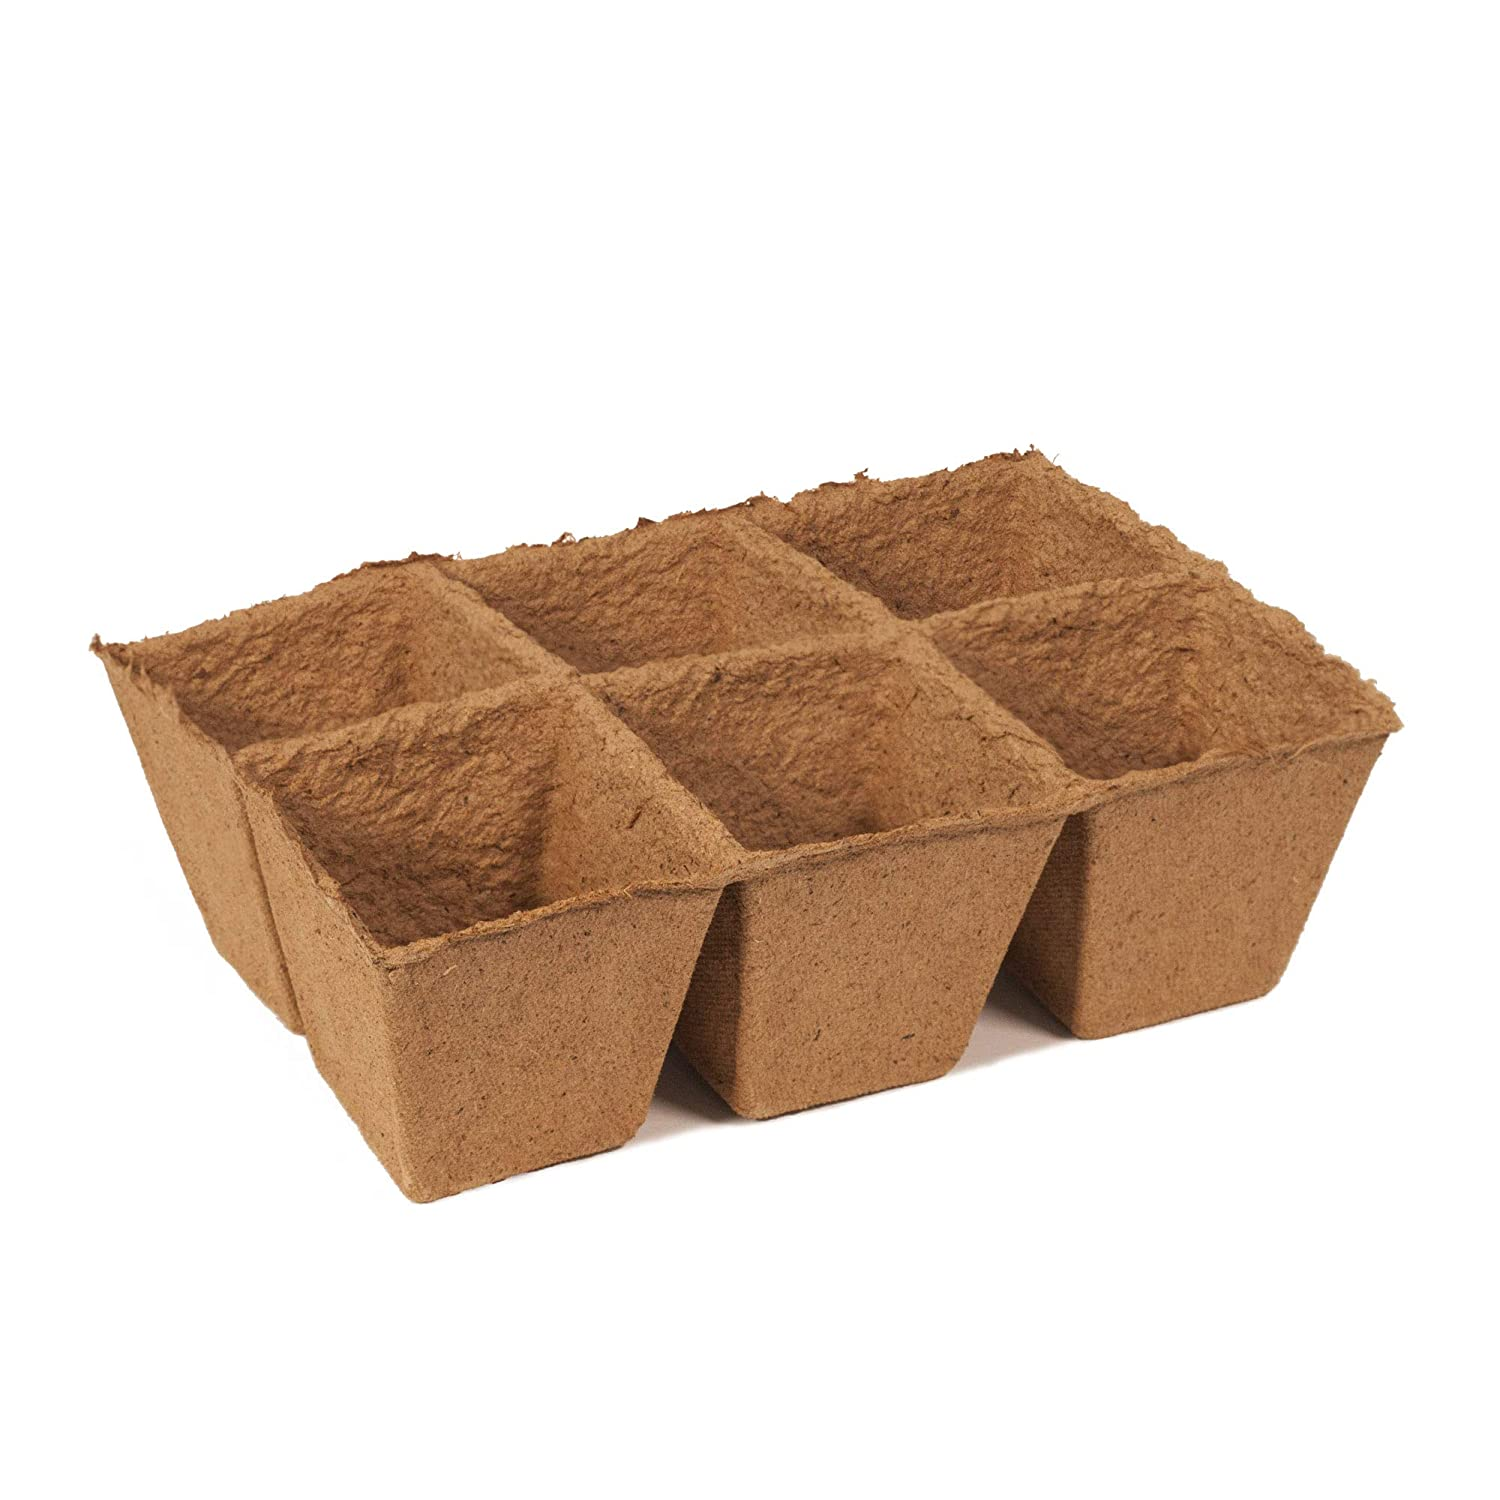 3 inch 30 Cell Pack Organic Biodegradable Pots Eco-Friendly Enhance Aeration Bonus 10 Plastic Plant Markers Daniels Plants 3 Inch Large Peat Pot Seedling Starter Trays Seed Germination Kit